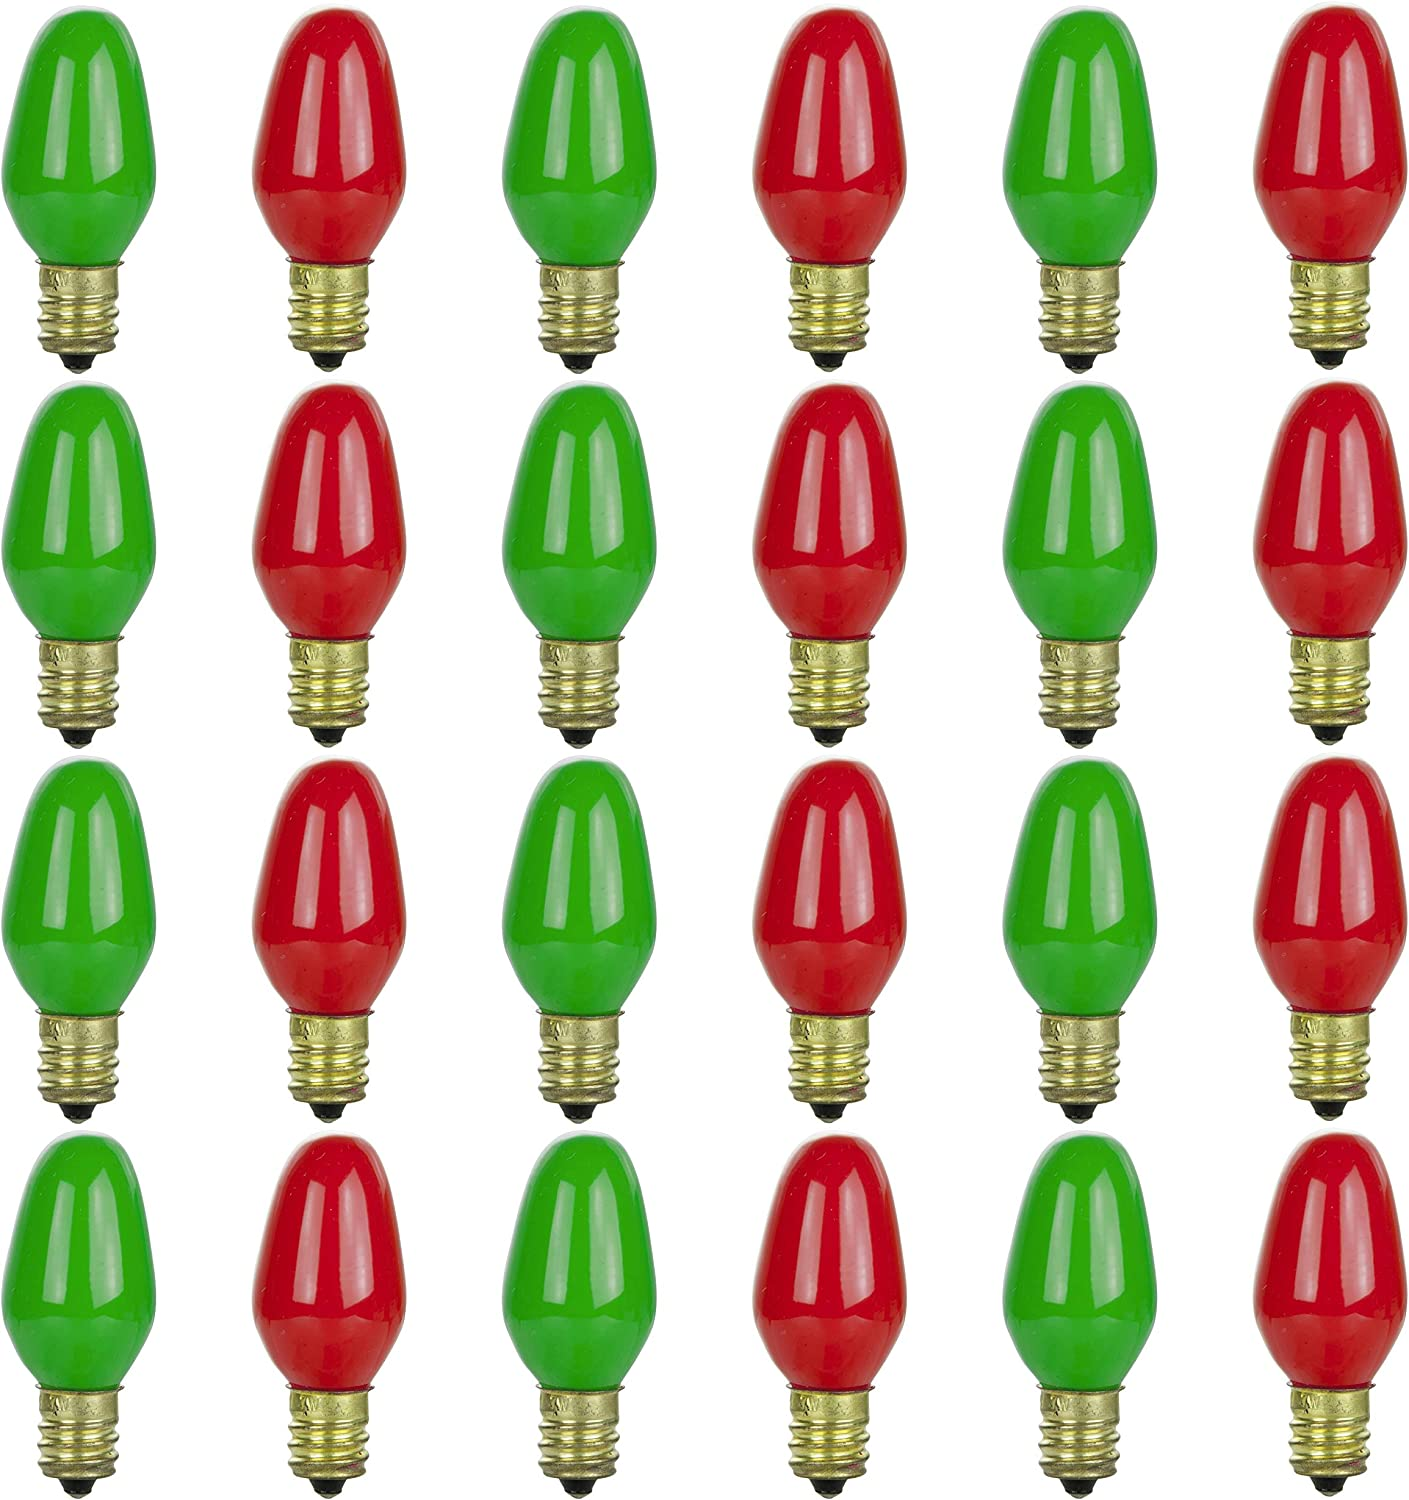 Candelabra Base 7 Watt Orange E14 24 Pack Red Sunlite 45173-SU Decorative Christmas Holiday Light Bulbs Dimmable Yellow and White 8,000 Hour Life Span Mercury Free Green Blue